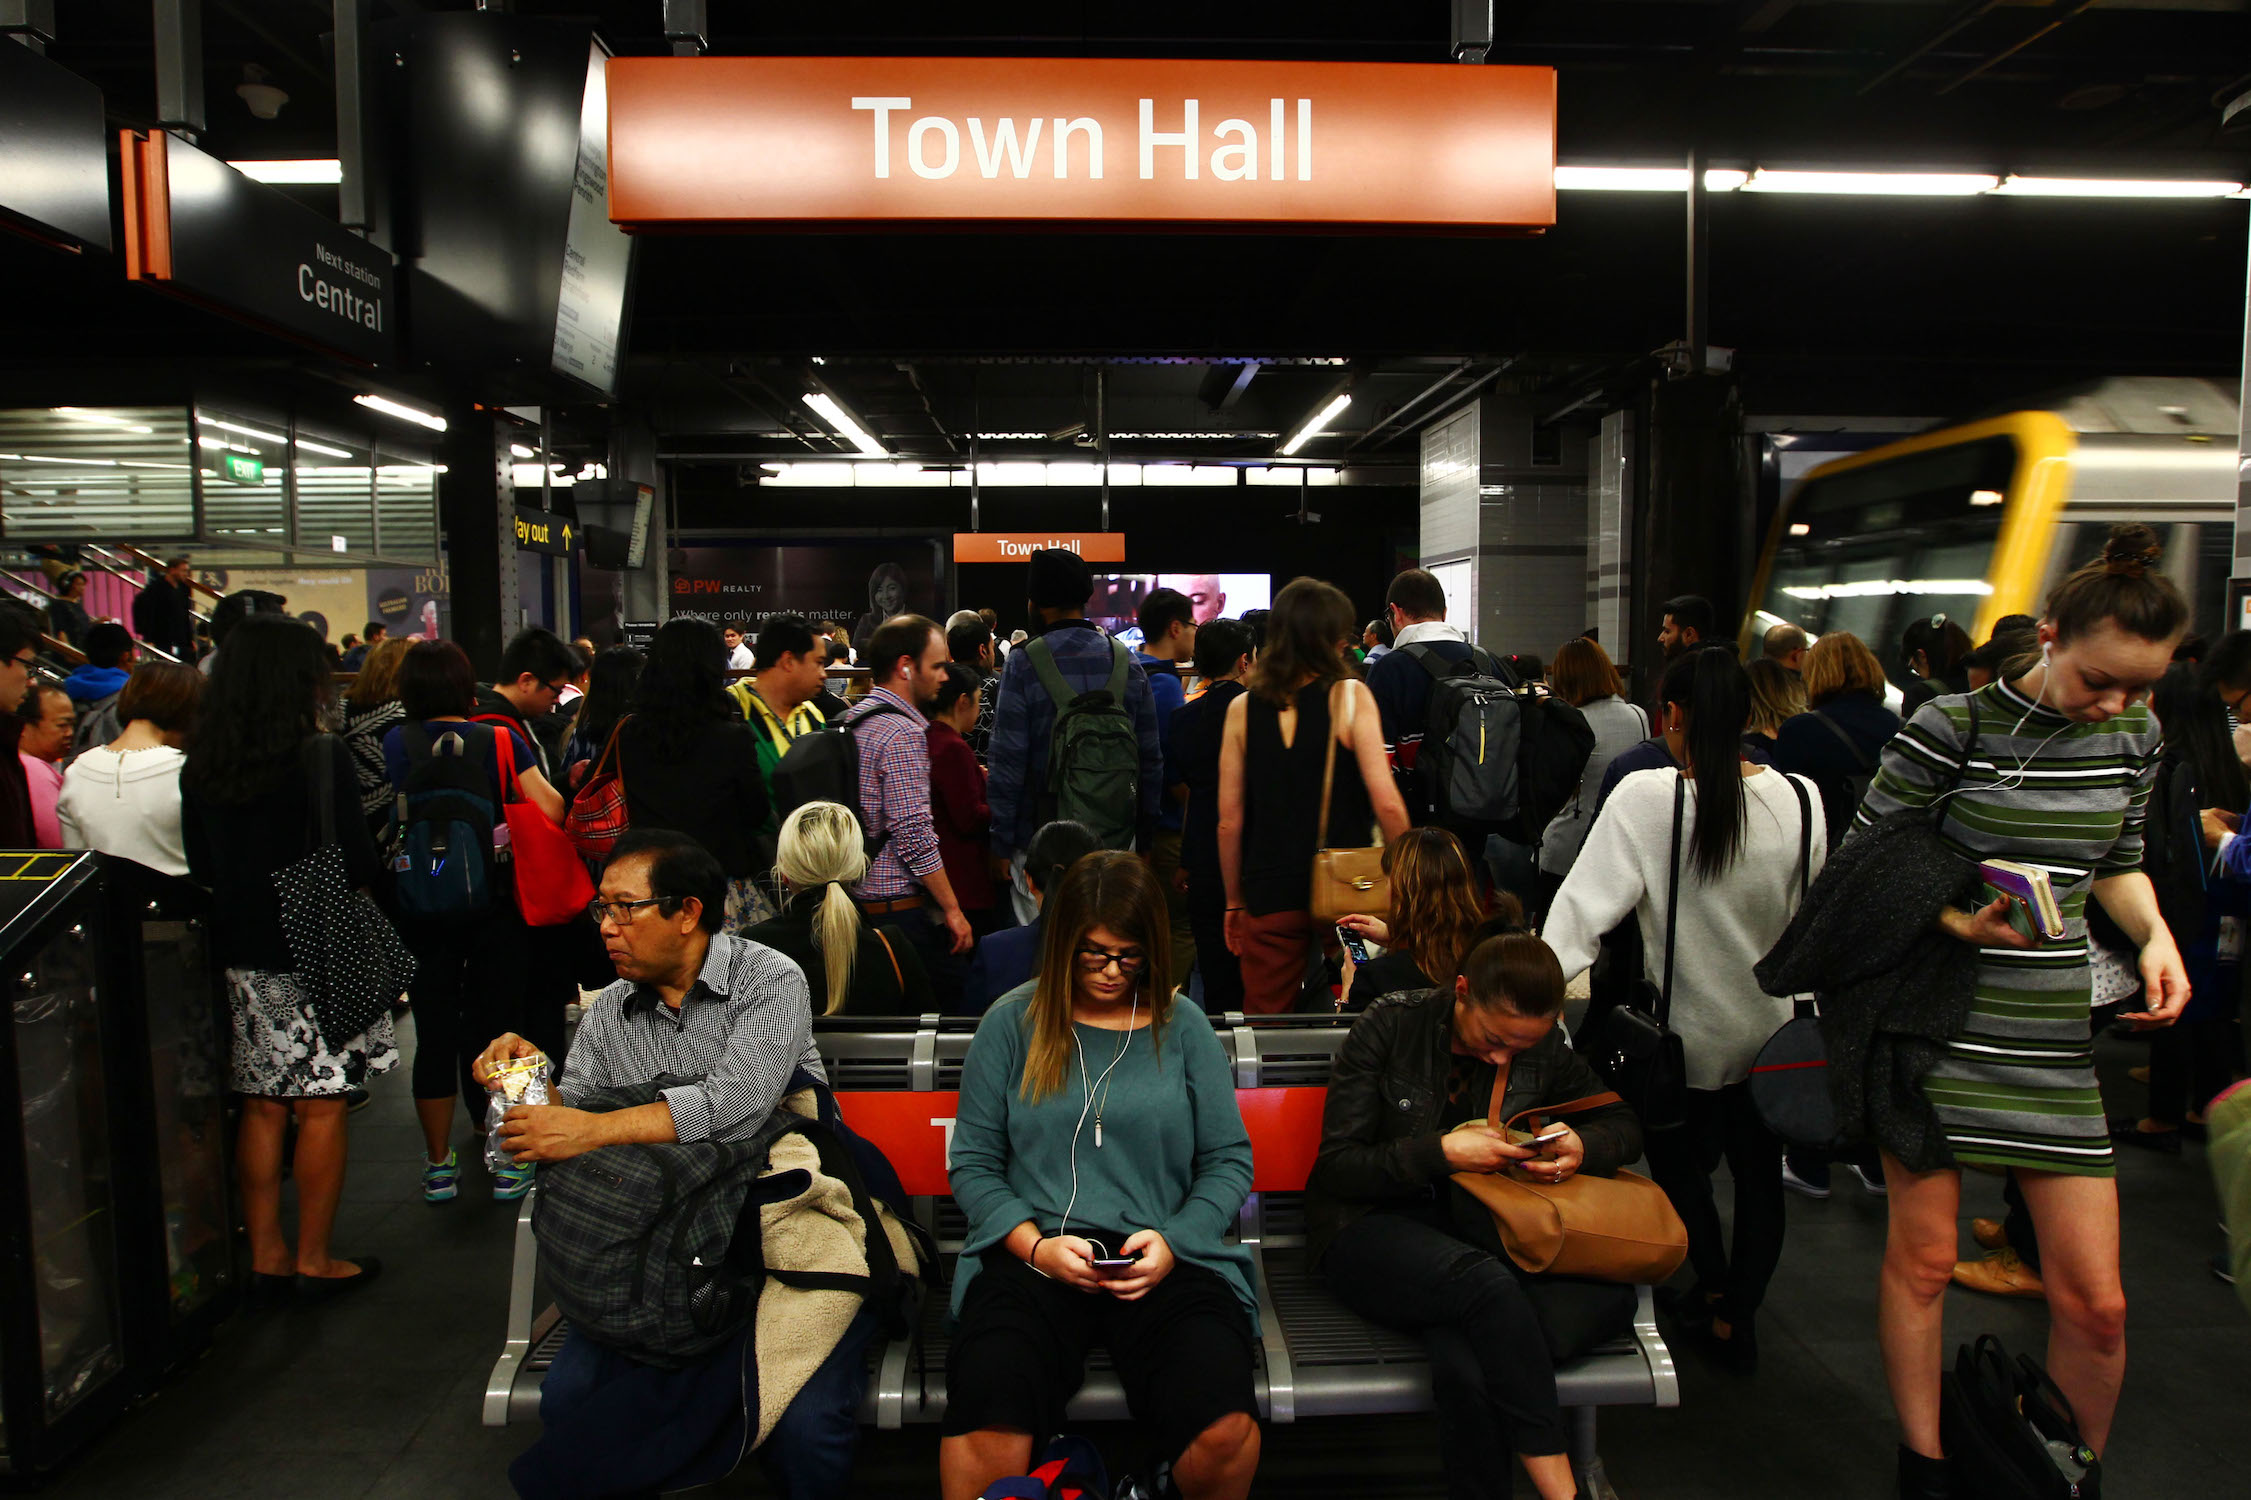 Crowded platform at Town Hall Station, Sydney